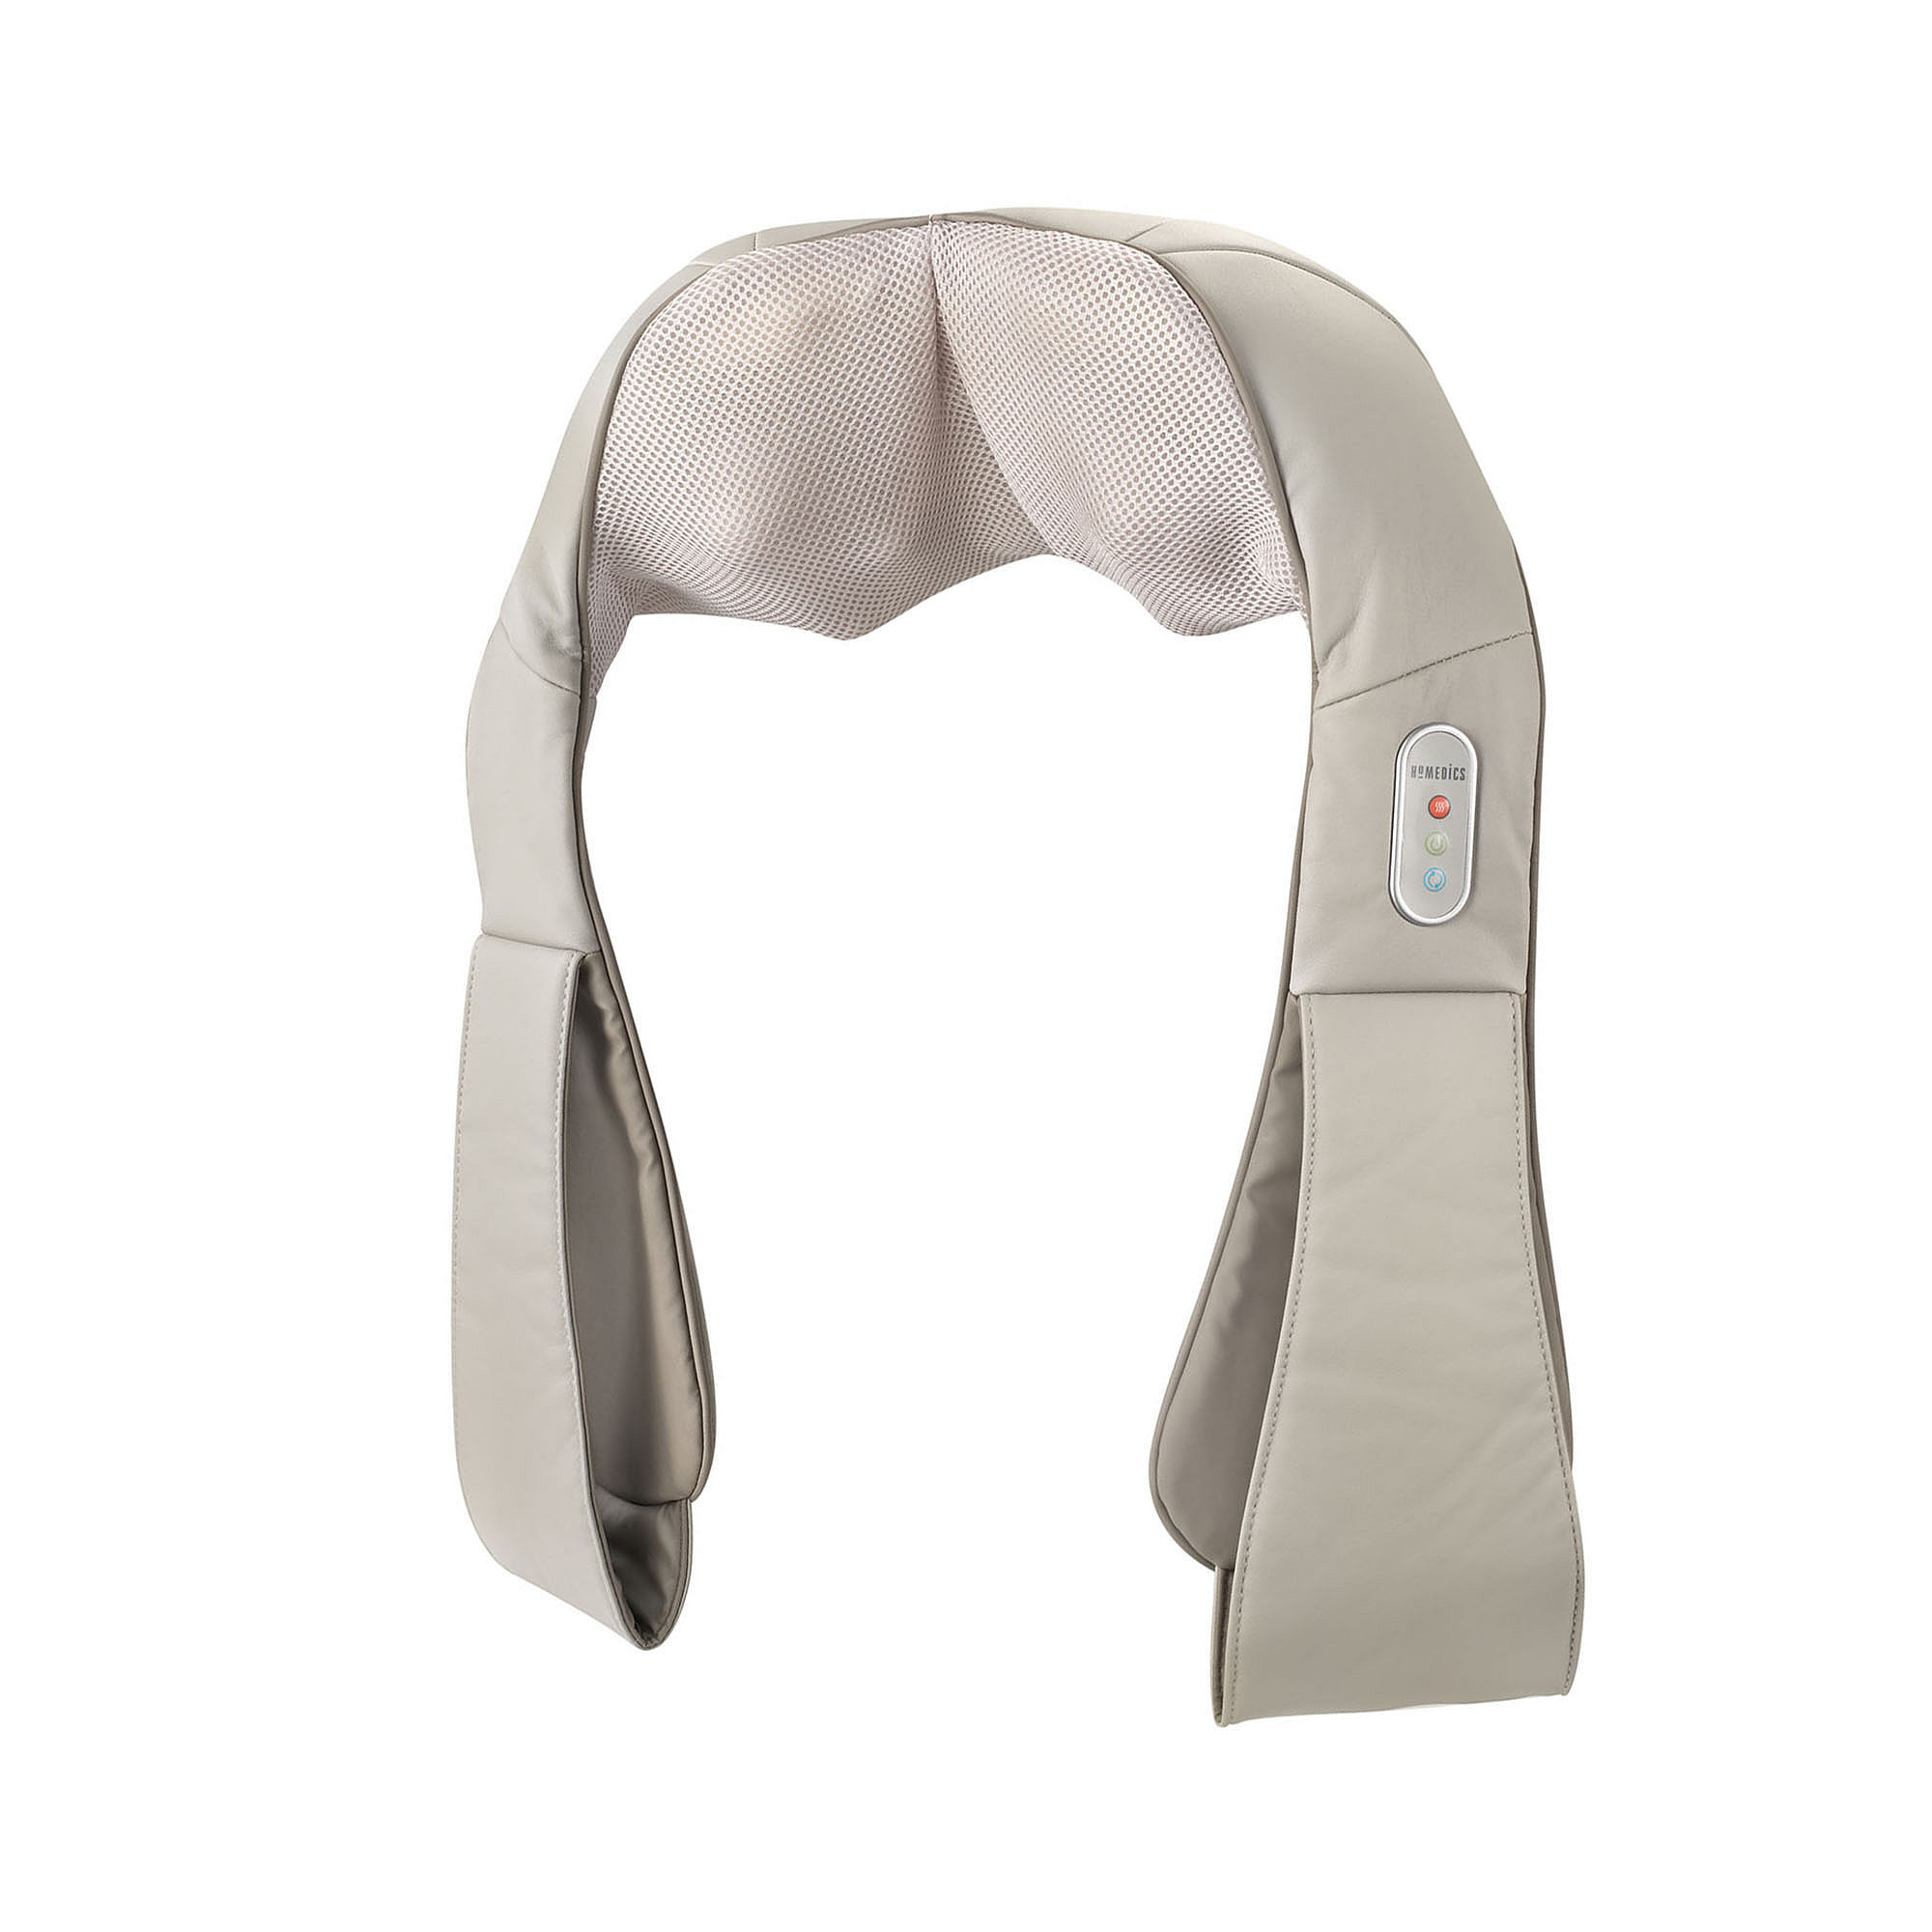 homedics neck and shoulder massager with heat instructions